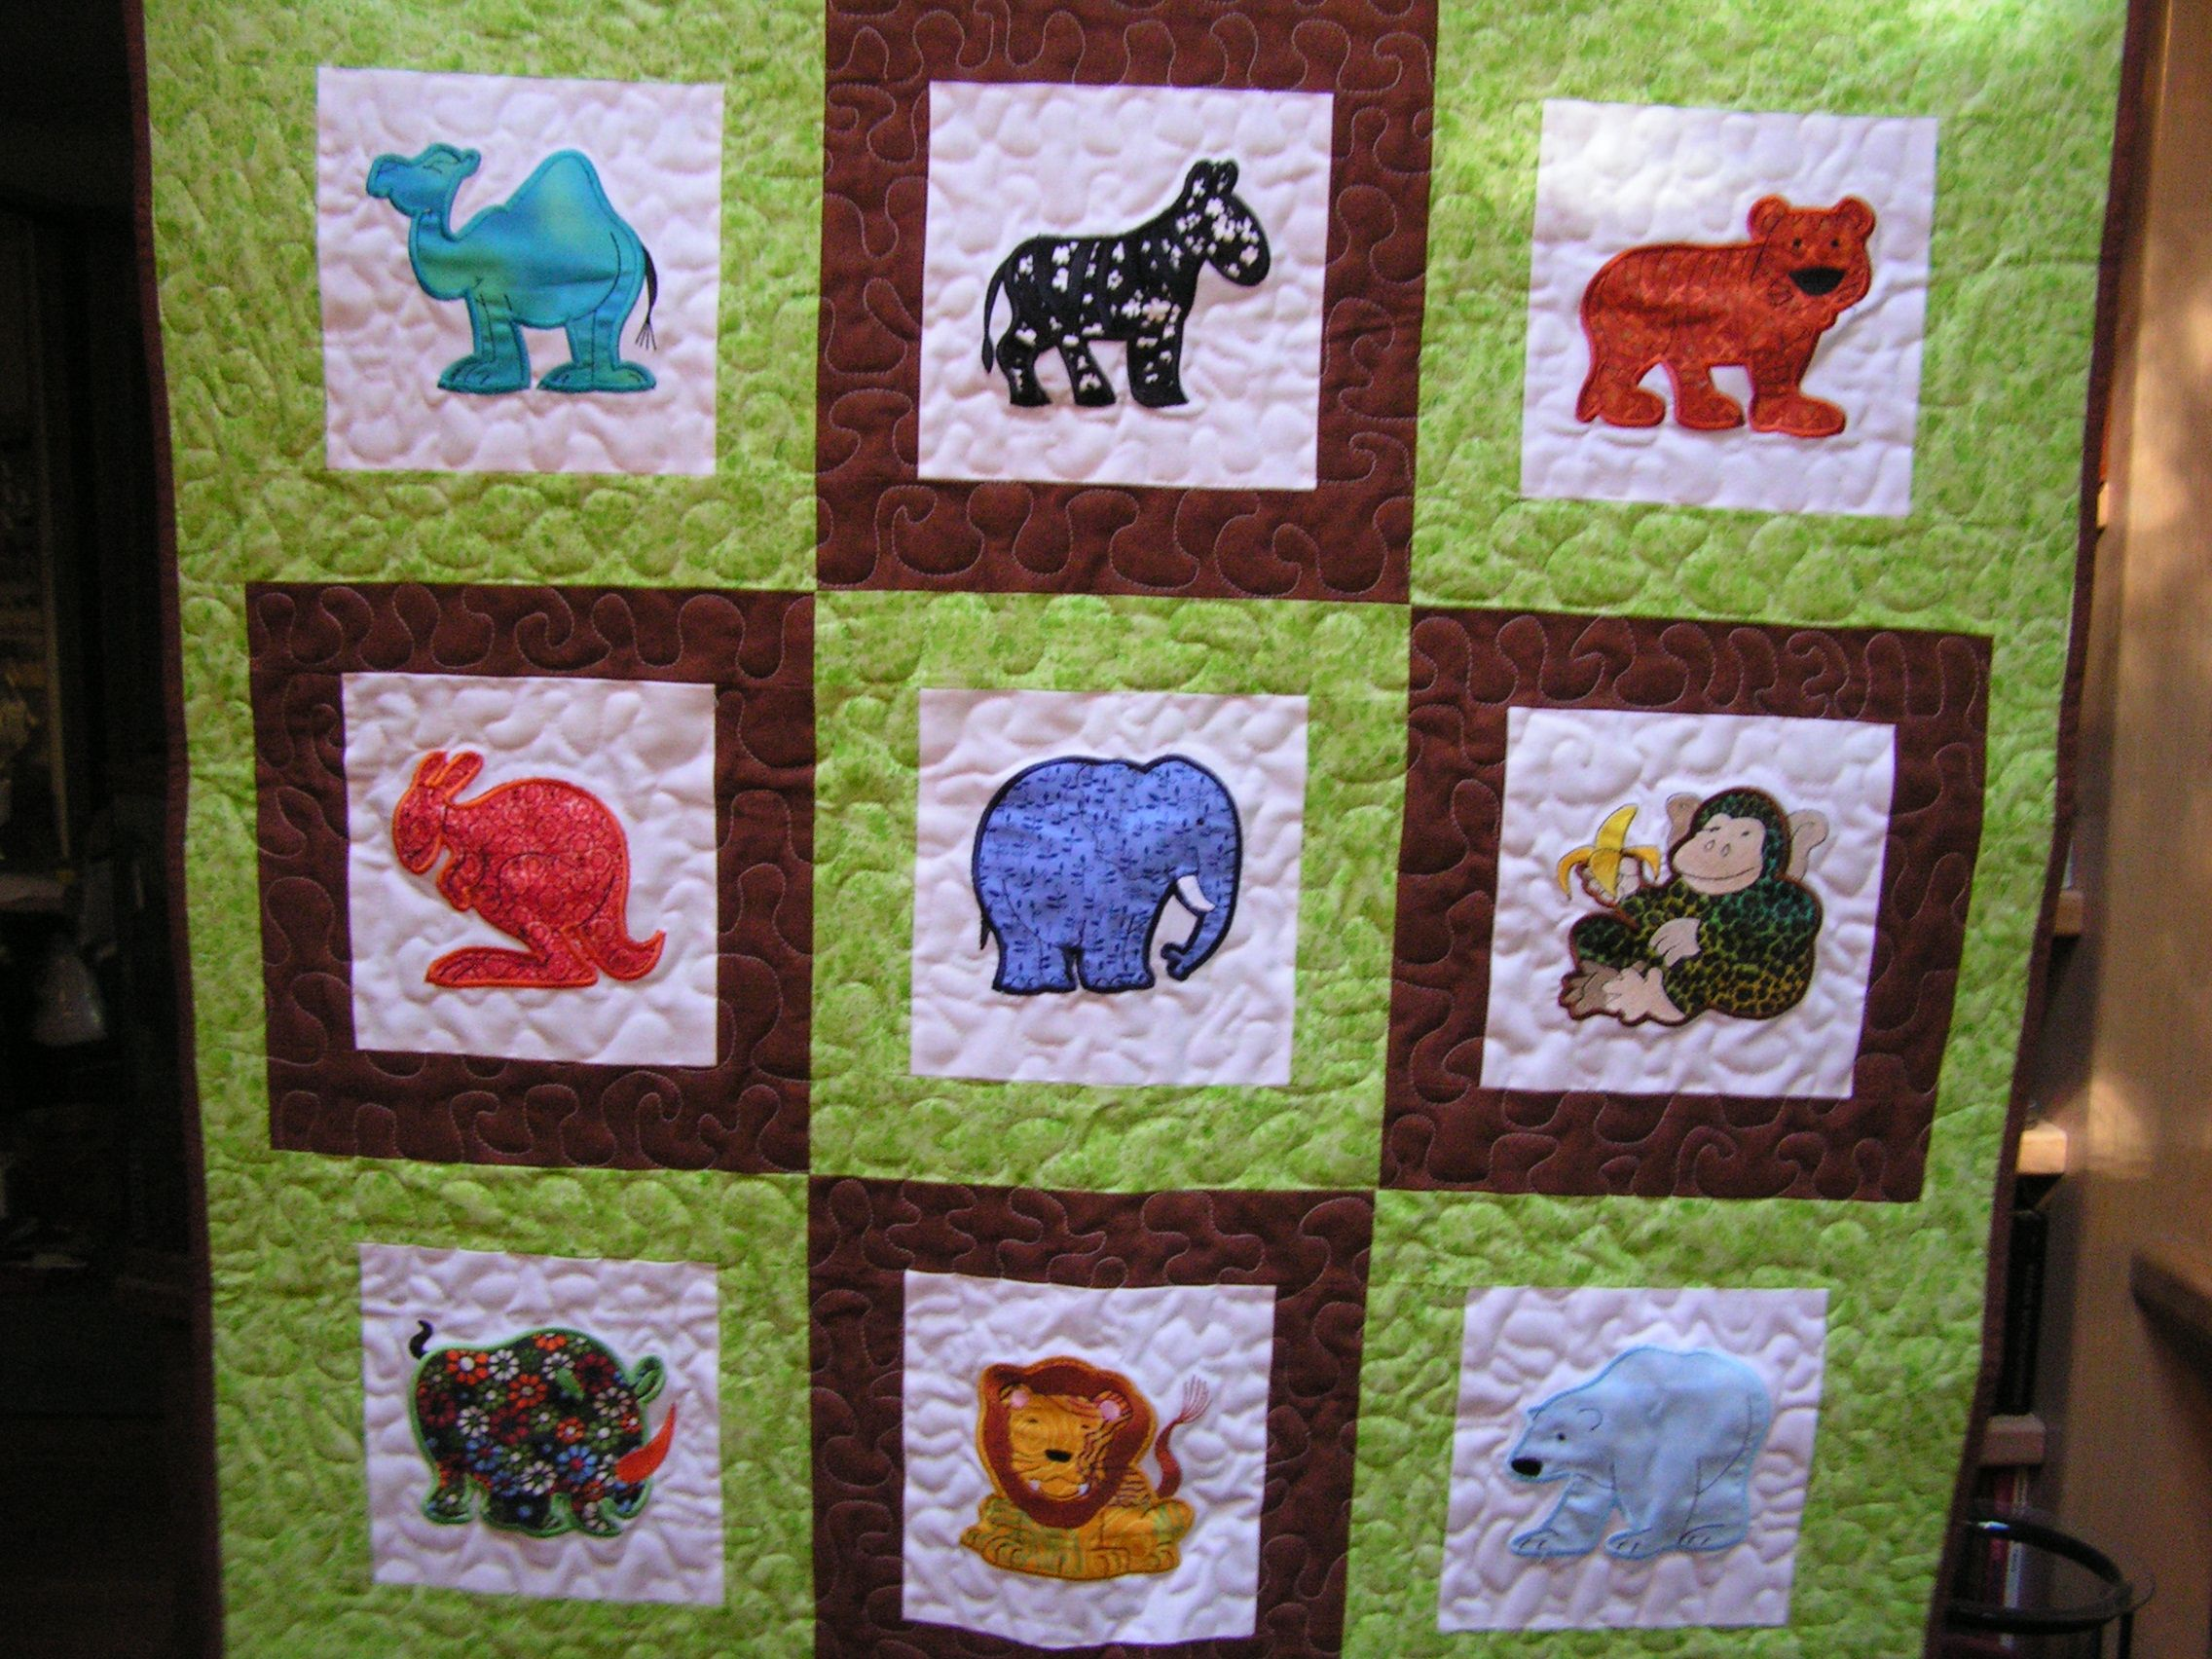 Embroidery Patterns For Quilt Squares : Baby Quilt, machine embroidery squares Brother Embroidery Pintere?